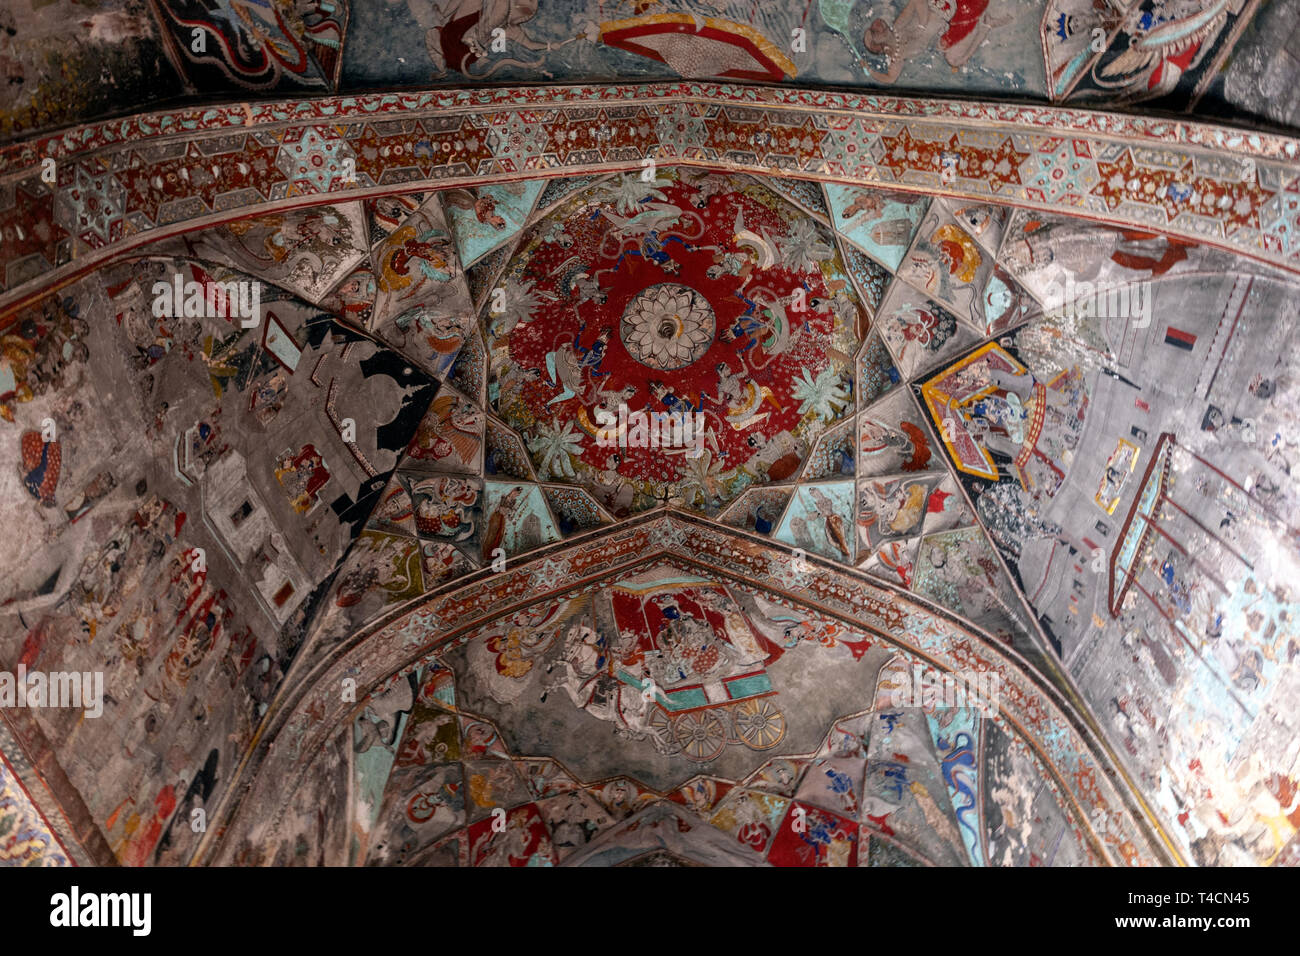 the Rasa mandala painted in the central vault of the ceiling. Wall Paintings in Badal Mahal, Bundi Palace, Bundi, Rajasthan, India Stock Photo